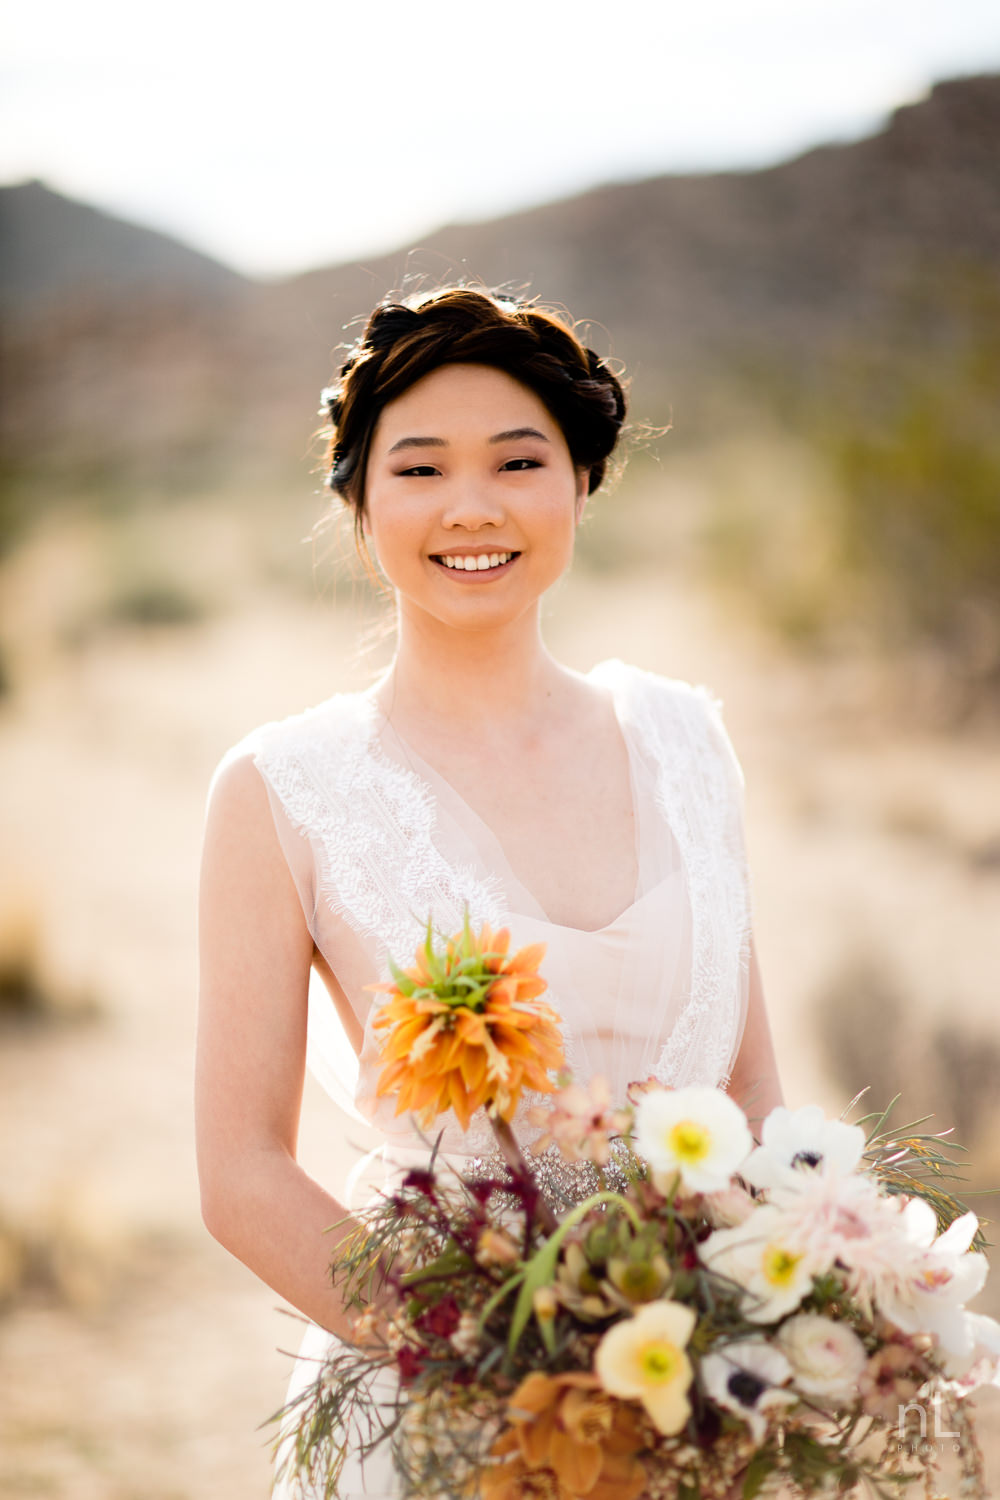 joshua-tree-engagement-wedding-elopement-photography-stylized-photoshoot-bridal-portrait-with-bouquet-dress-and-veil